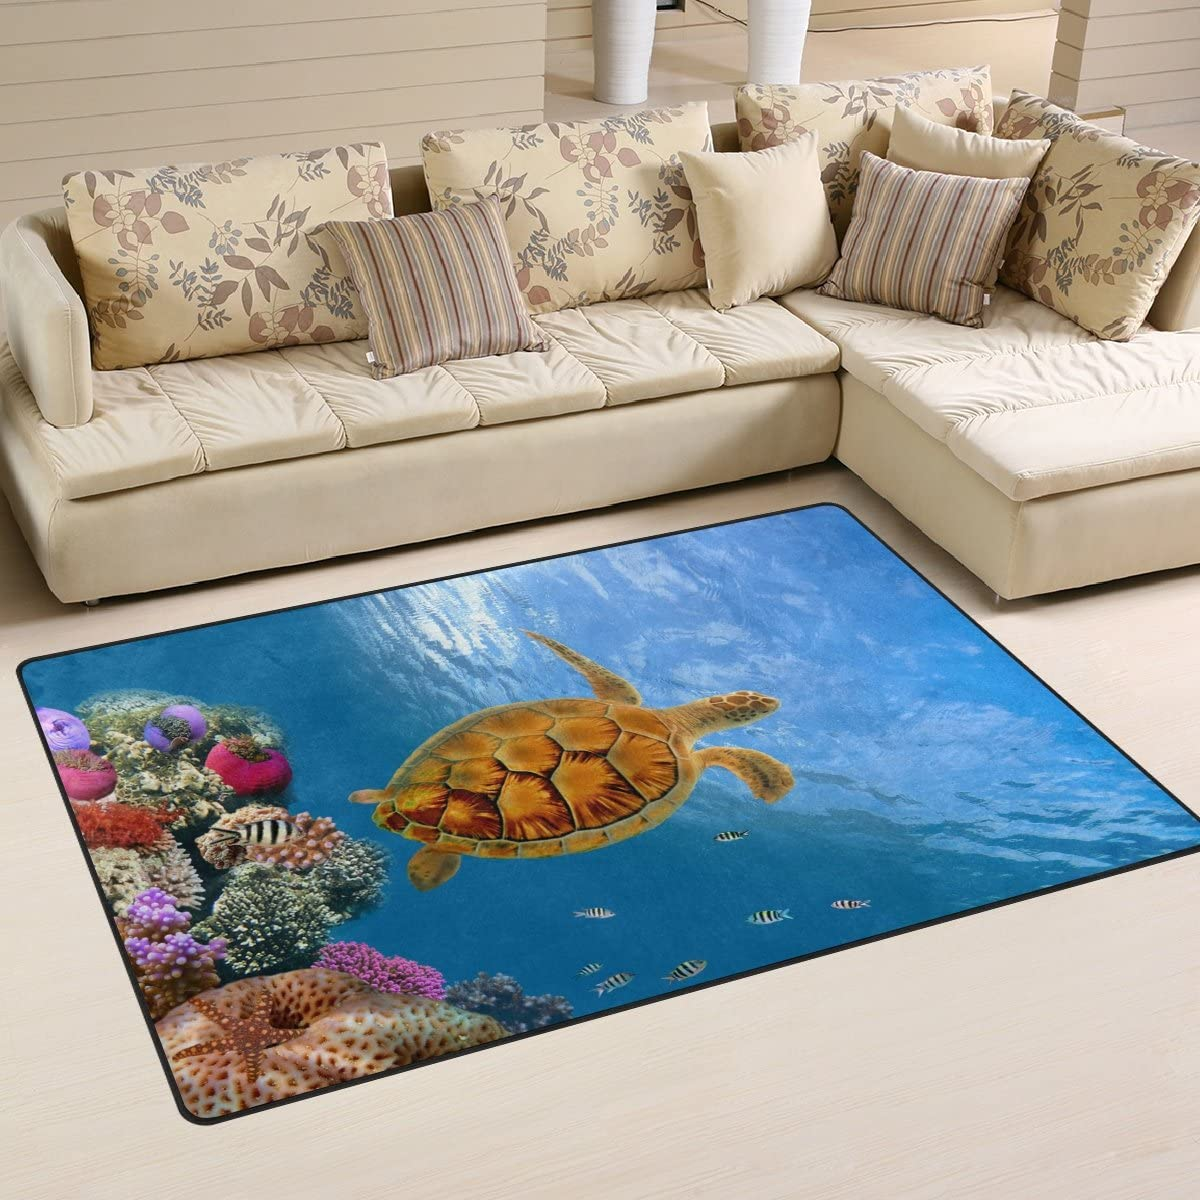 WOZO Coral Reef Sea Turtle Under Water World Area Rug Rugs Non-Slip Floor Mat Doormats Living Dining Room Bedroom Dorm 60 x 39 inches inches Home Decor